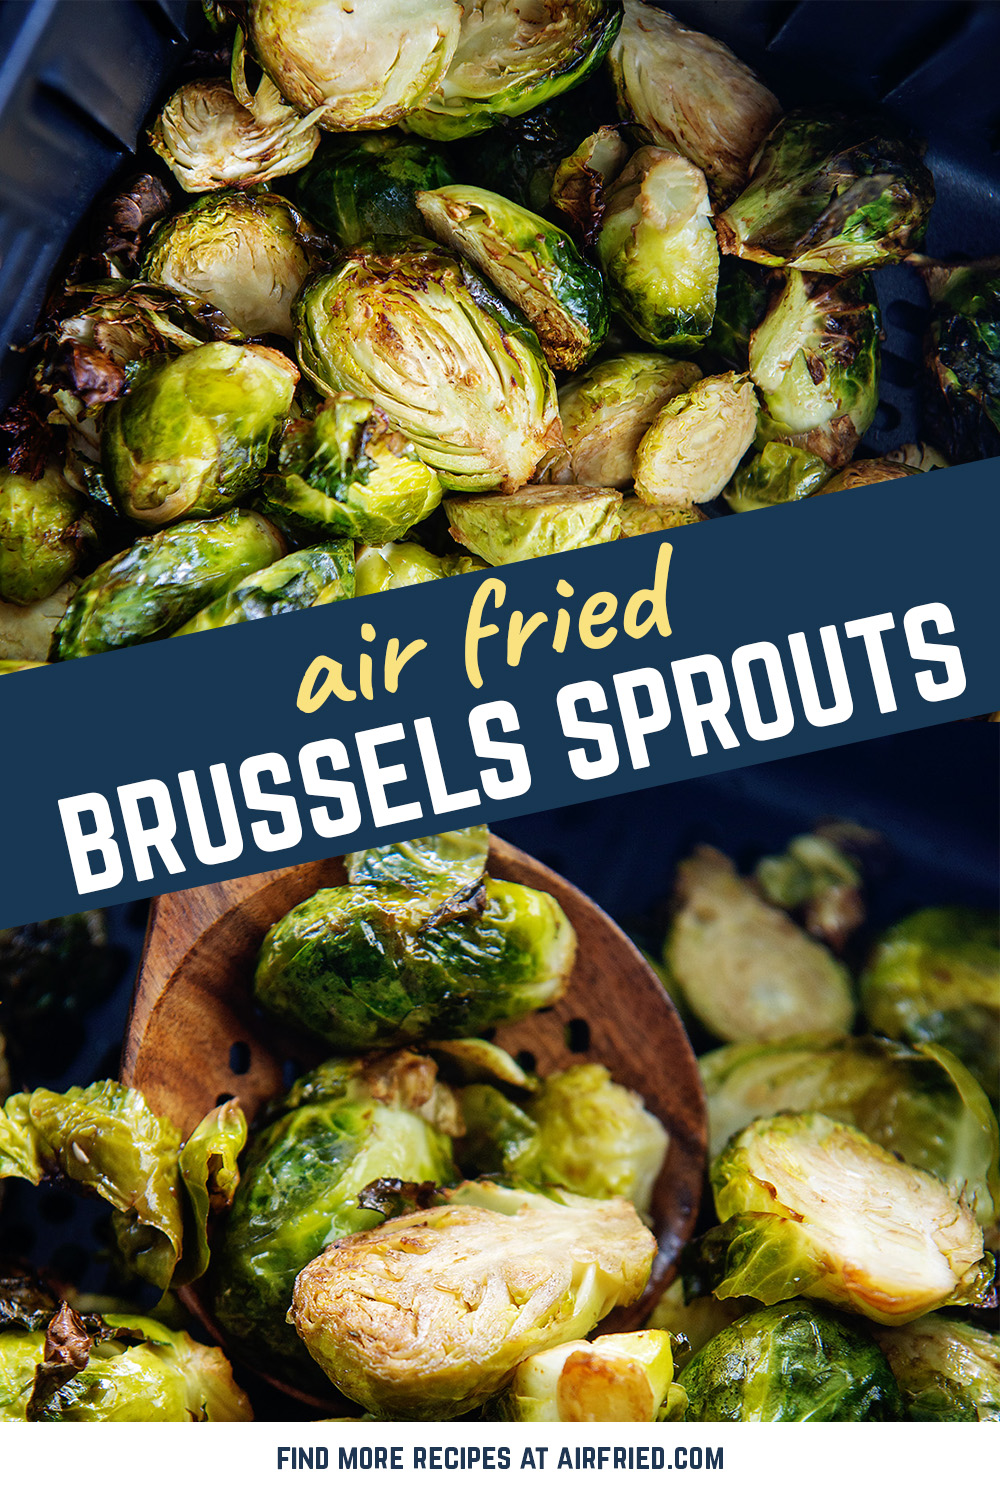 Crispy, seasoned brussels sprouts are really easy to cook and clean up in the air fryer.